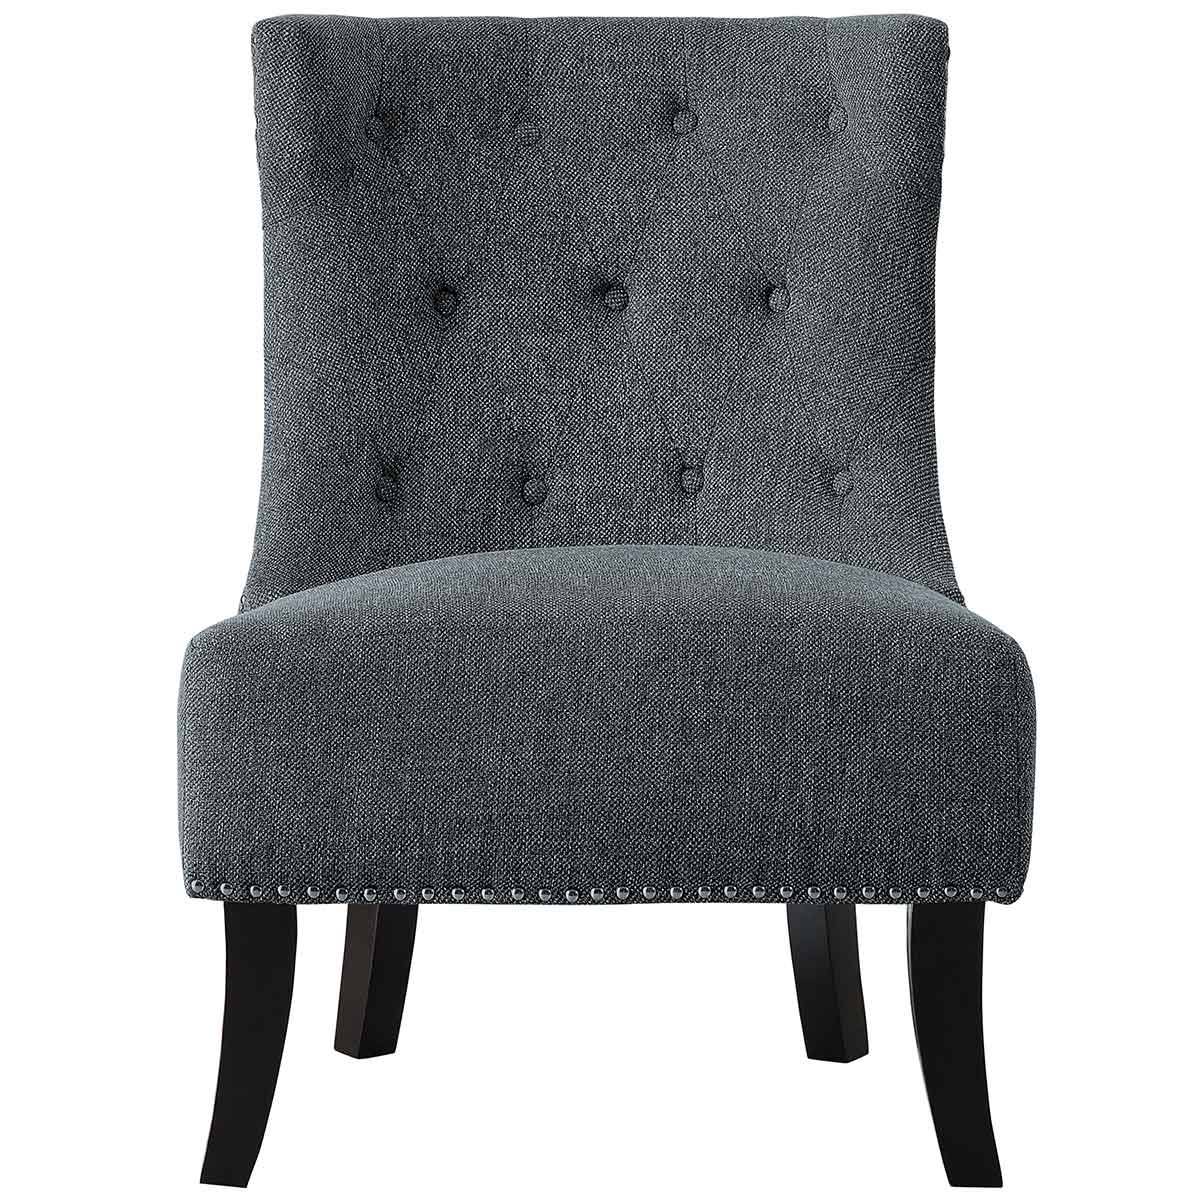 Homelegance Paighton Accent Chair - Gray